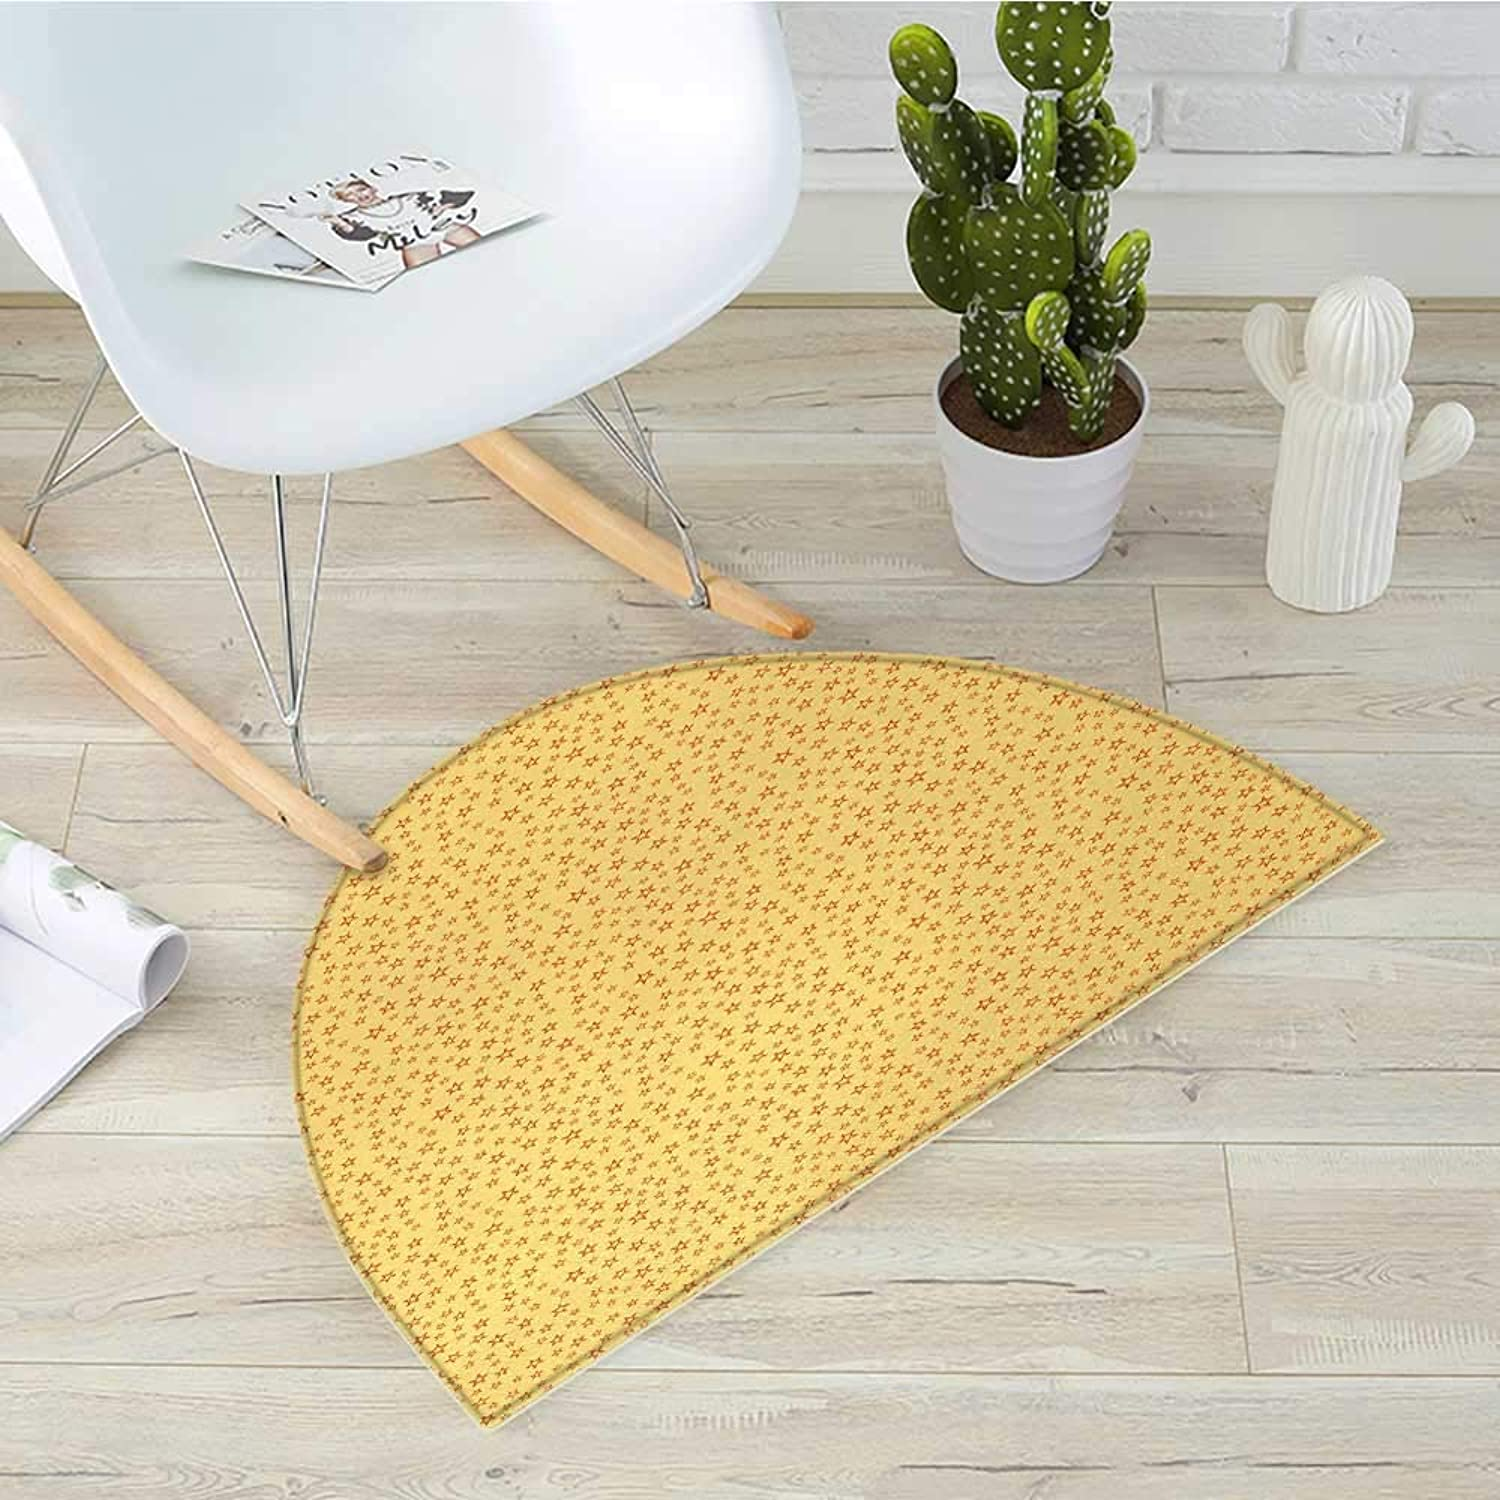 Stars Semicircle Doormat Doodle Style Five Pointed Geometric Shapes Abstract Heavenly Bodies Design Halfmoon doormats H 35.4  xD 53.1  Pale Yellow orange